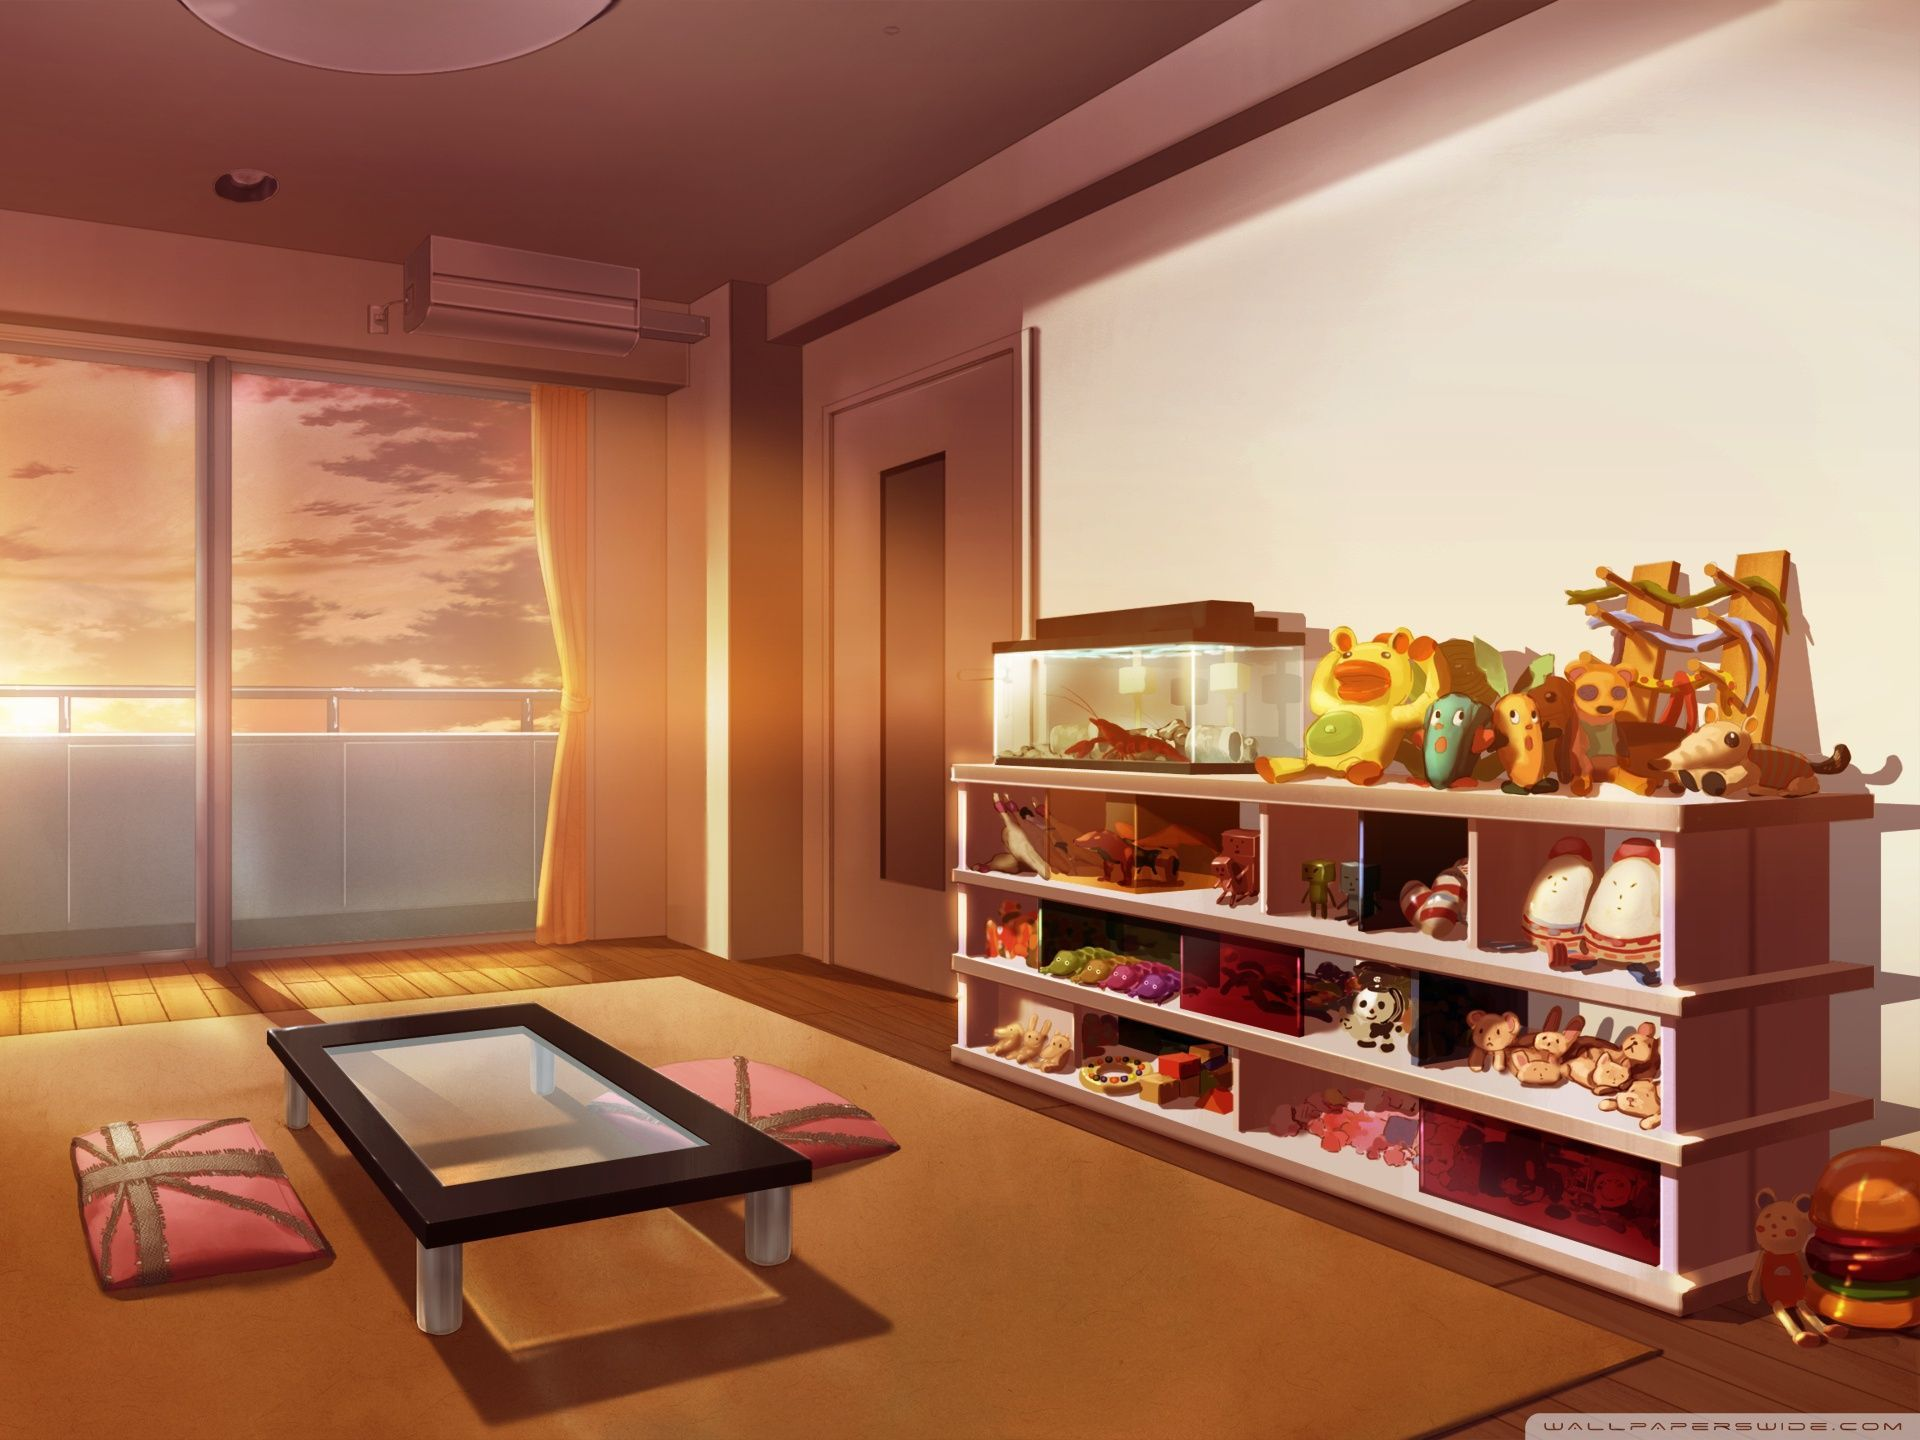 Anime Room Wallpapers   Top Anime Room Backgrounds 1920x1440